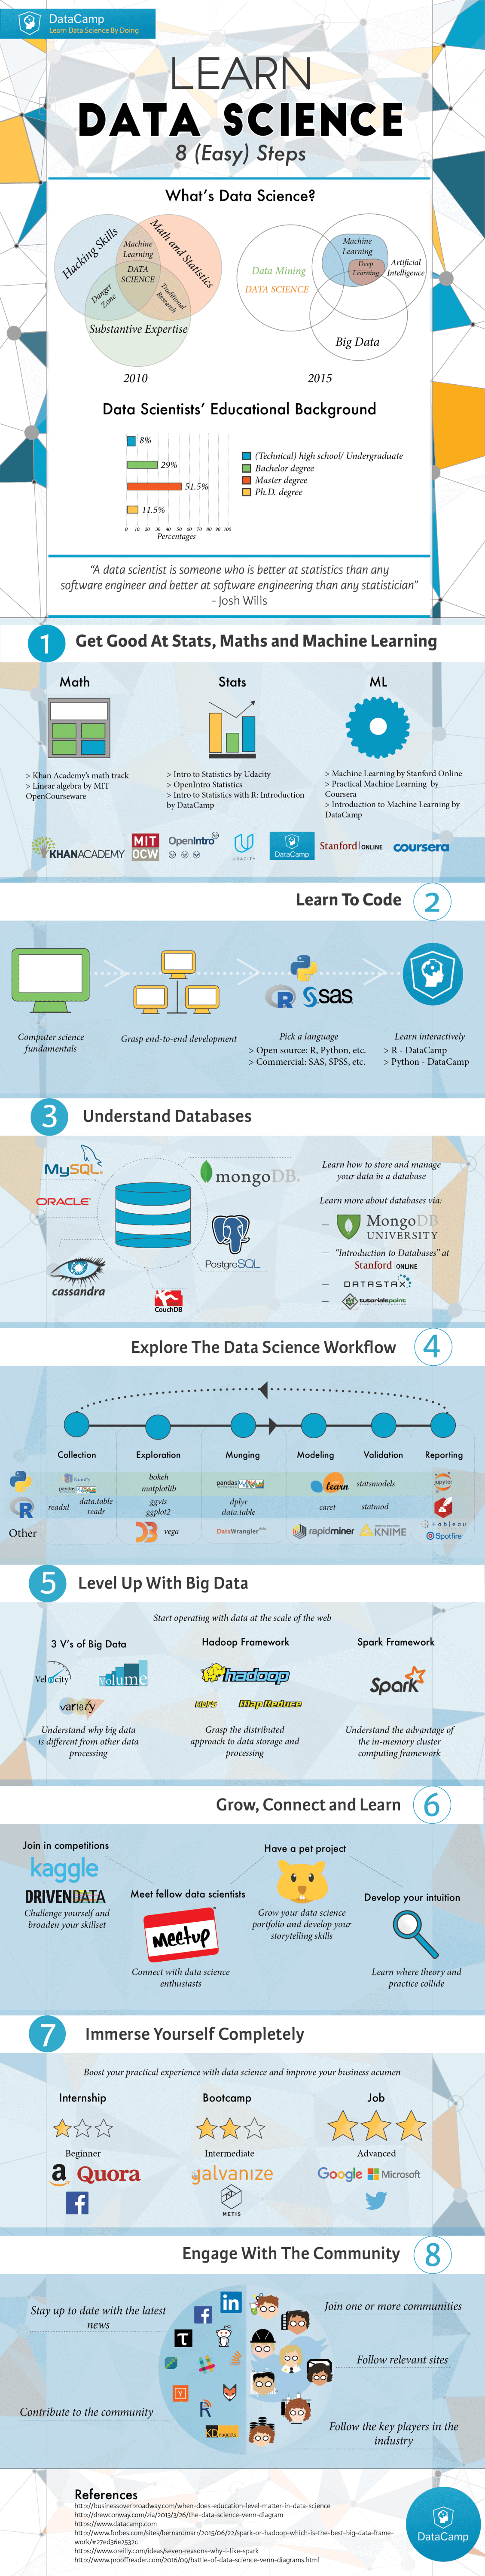 Learn Data Science Infographic